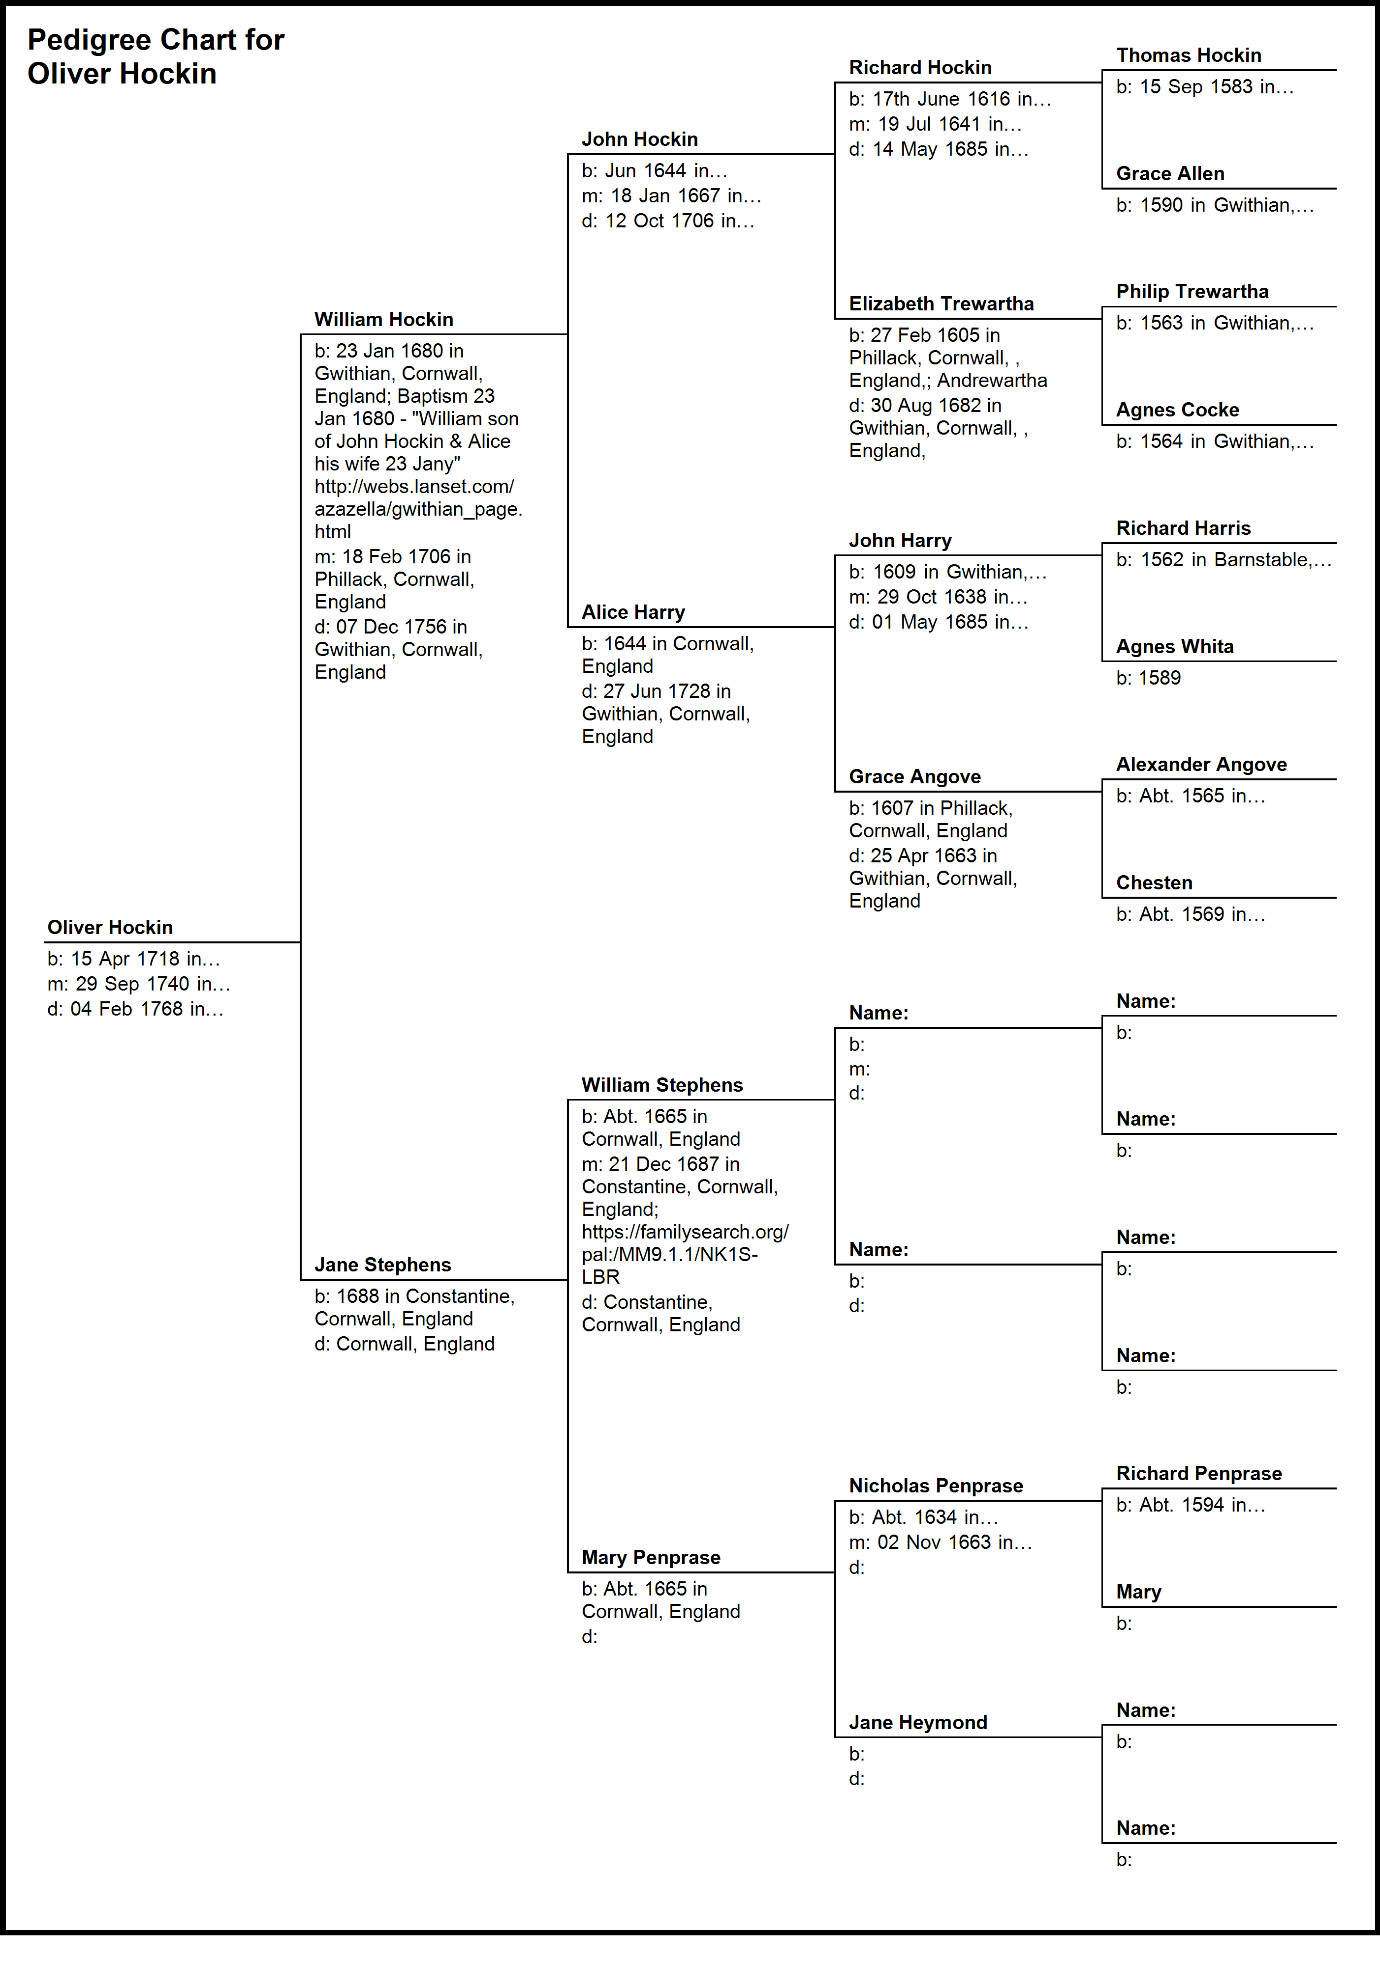 C:\Users\Virginia Rundle\Dropbox\VR\Ancestry Stuff\Fuller\Hockin\Pedigree Chart for Oliver Hockin 2.bmp